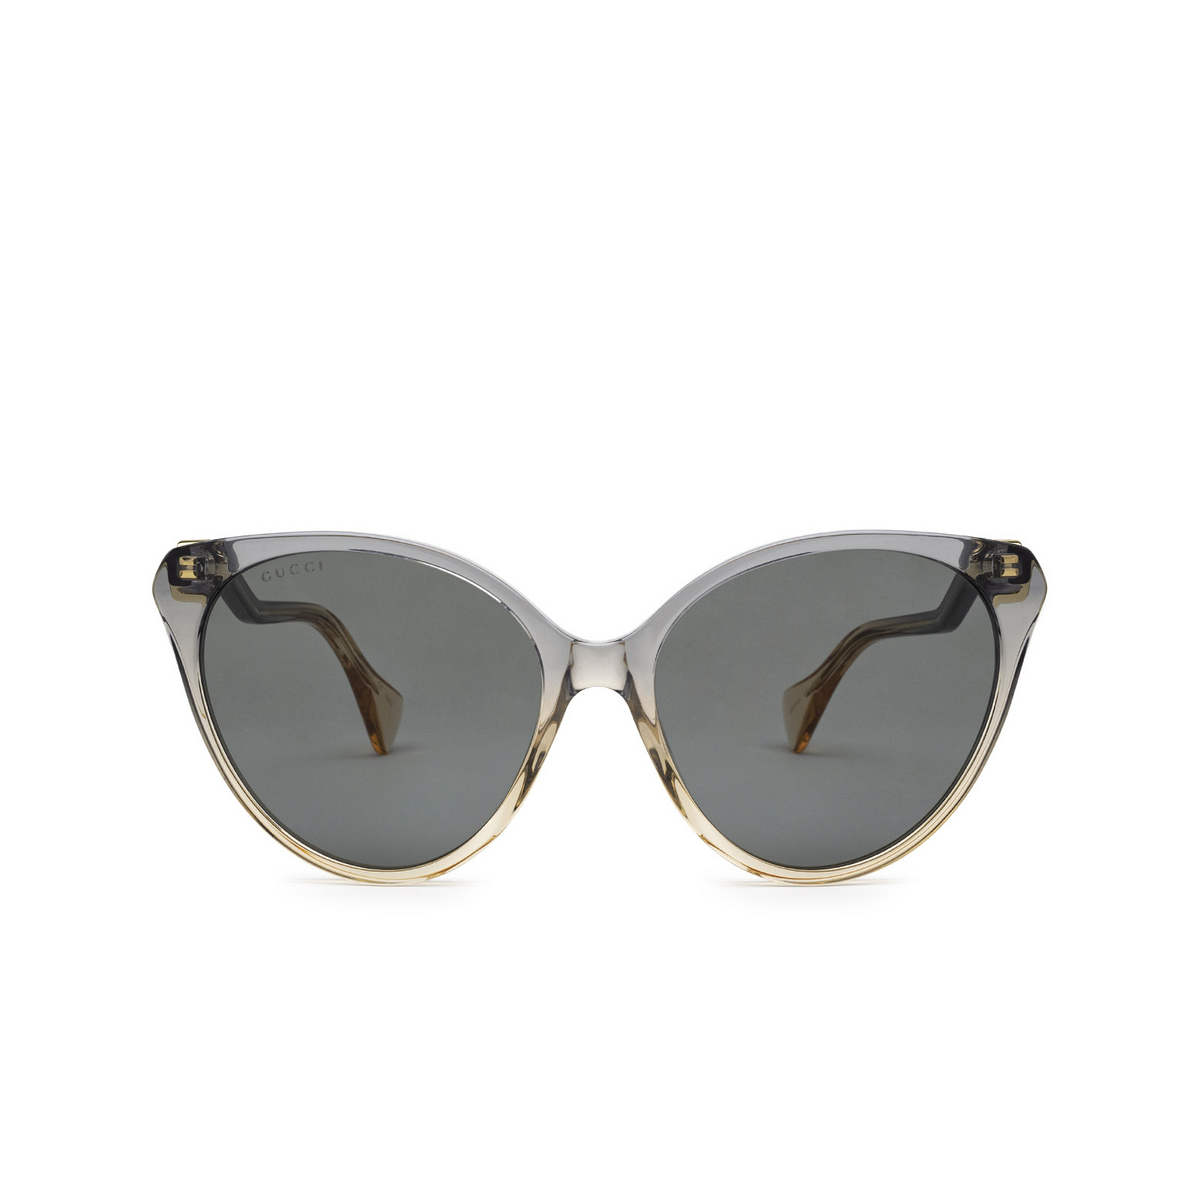 Gucci® Cat-eye Sunglasses: GG1011S color Blue & Pink 002 - front view.